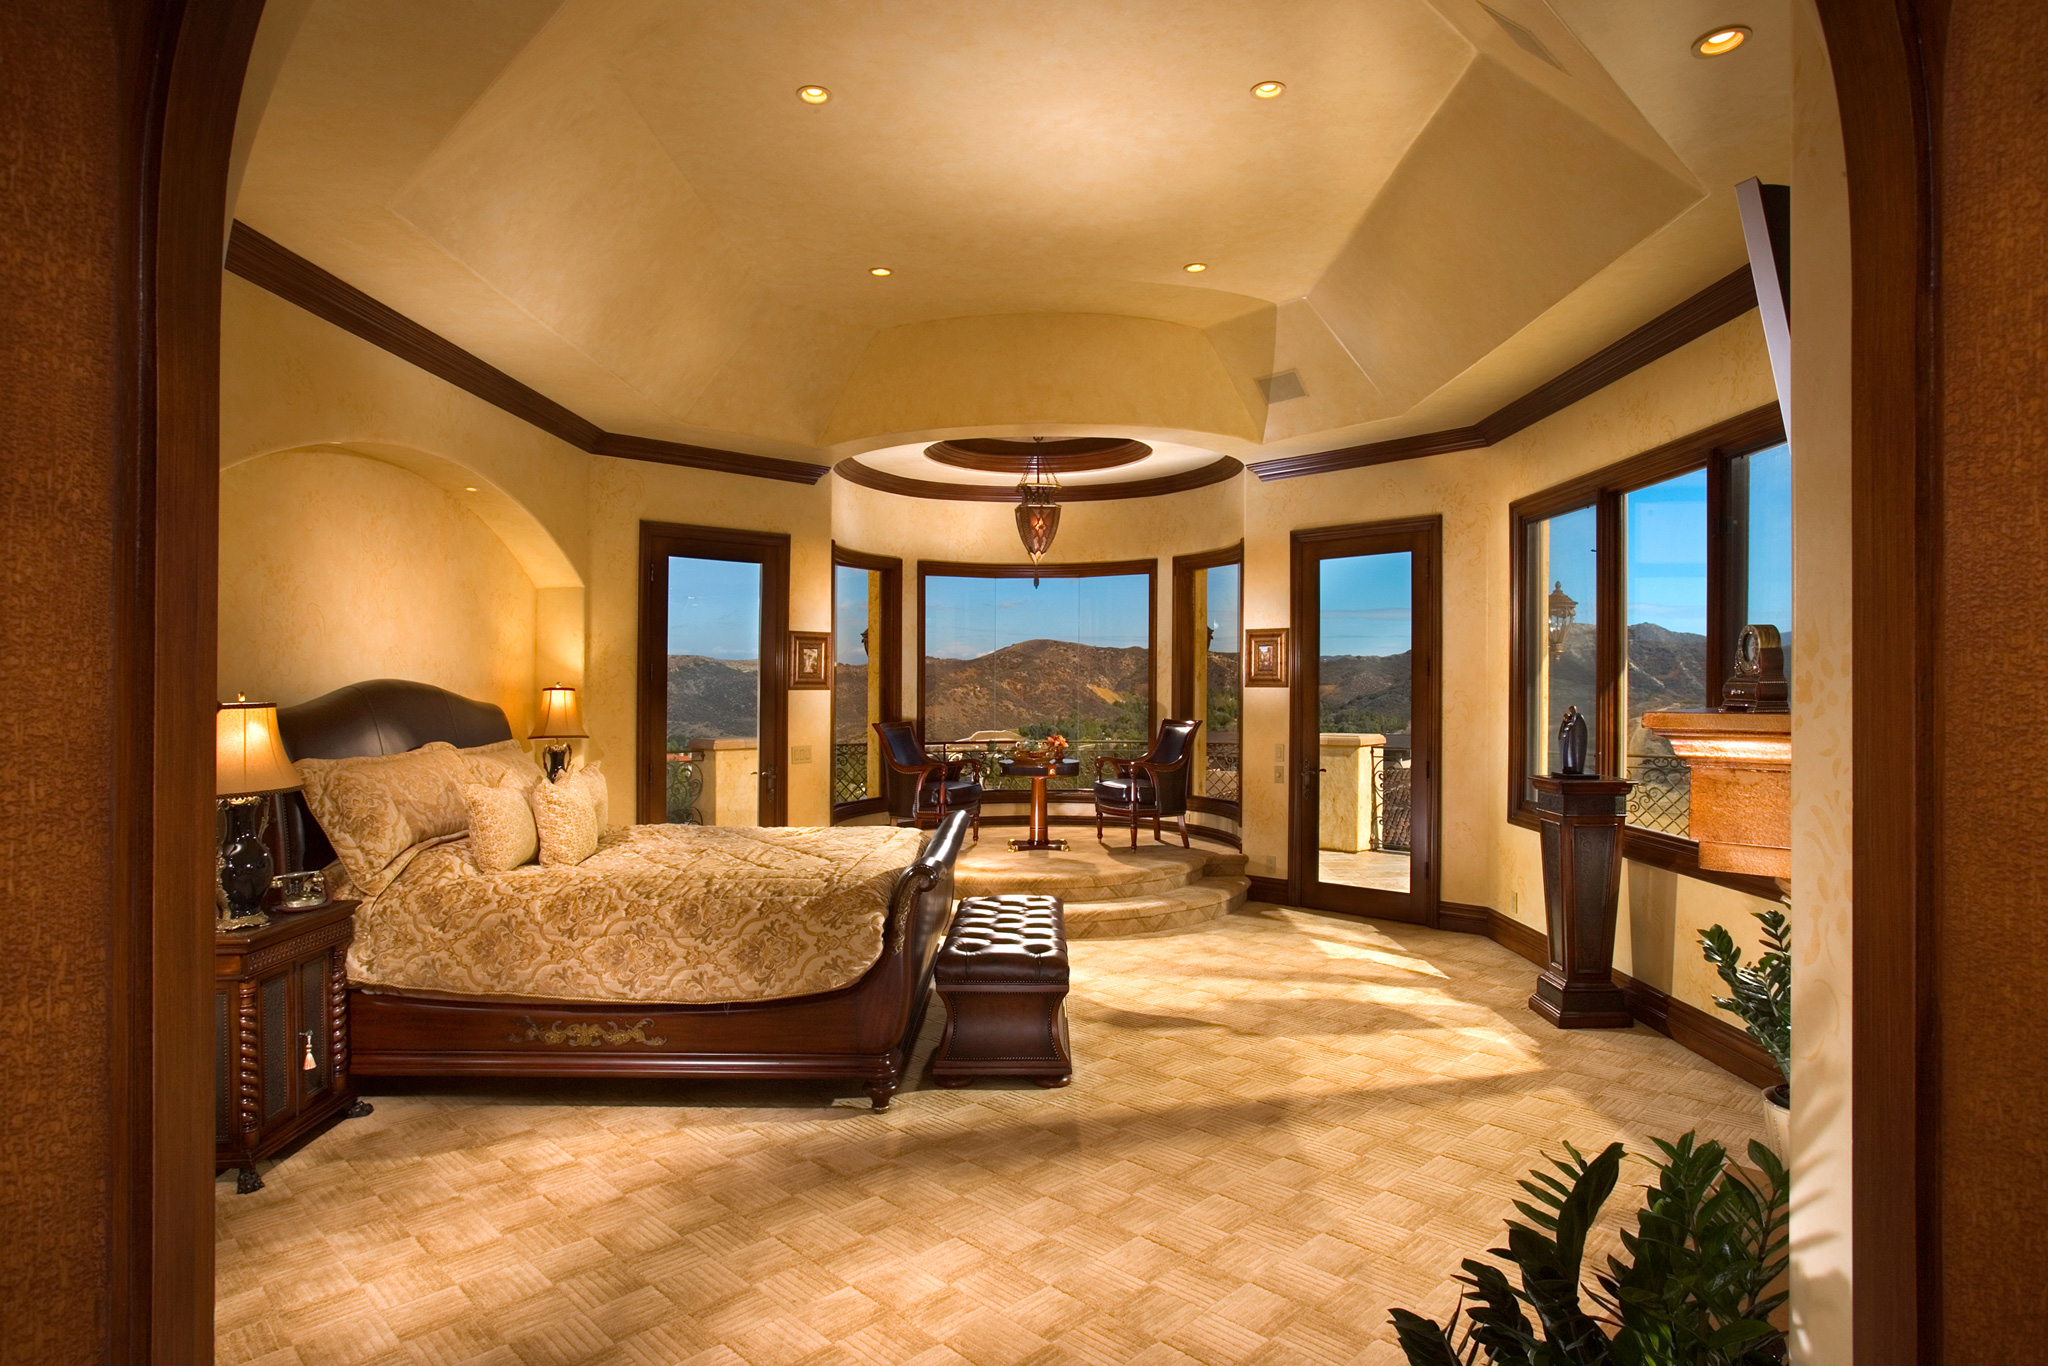 Master Bedroom The Interior Designs